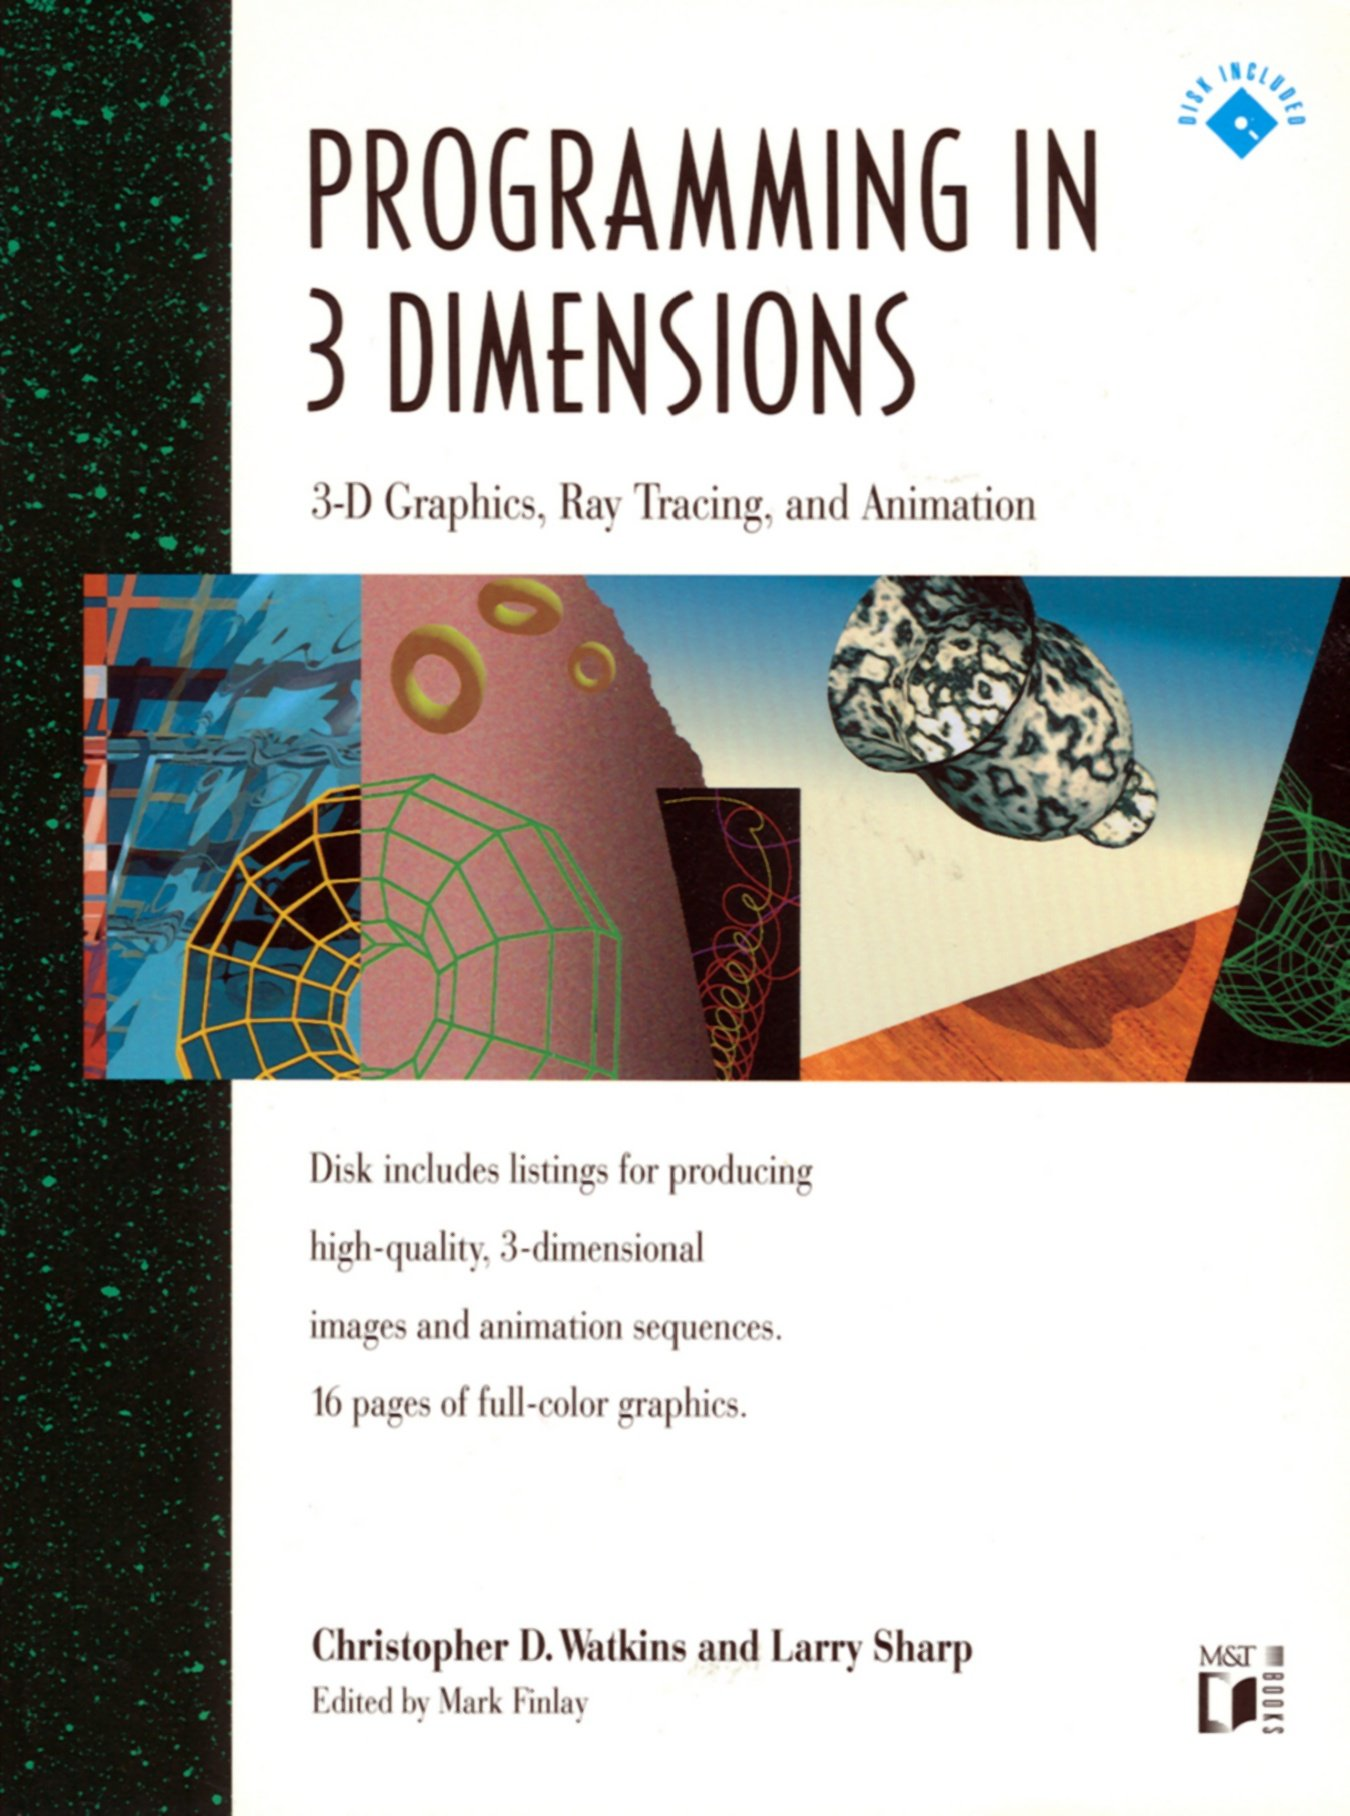 Programming in 3 dimensions 3 d graphics ray tracing and programming in 3 dimensions 3 d graphics ray tracing and animationbook and disk christopher d watkins larry sharp 9781558512207 amazon books magicingreecefo Choice Image